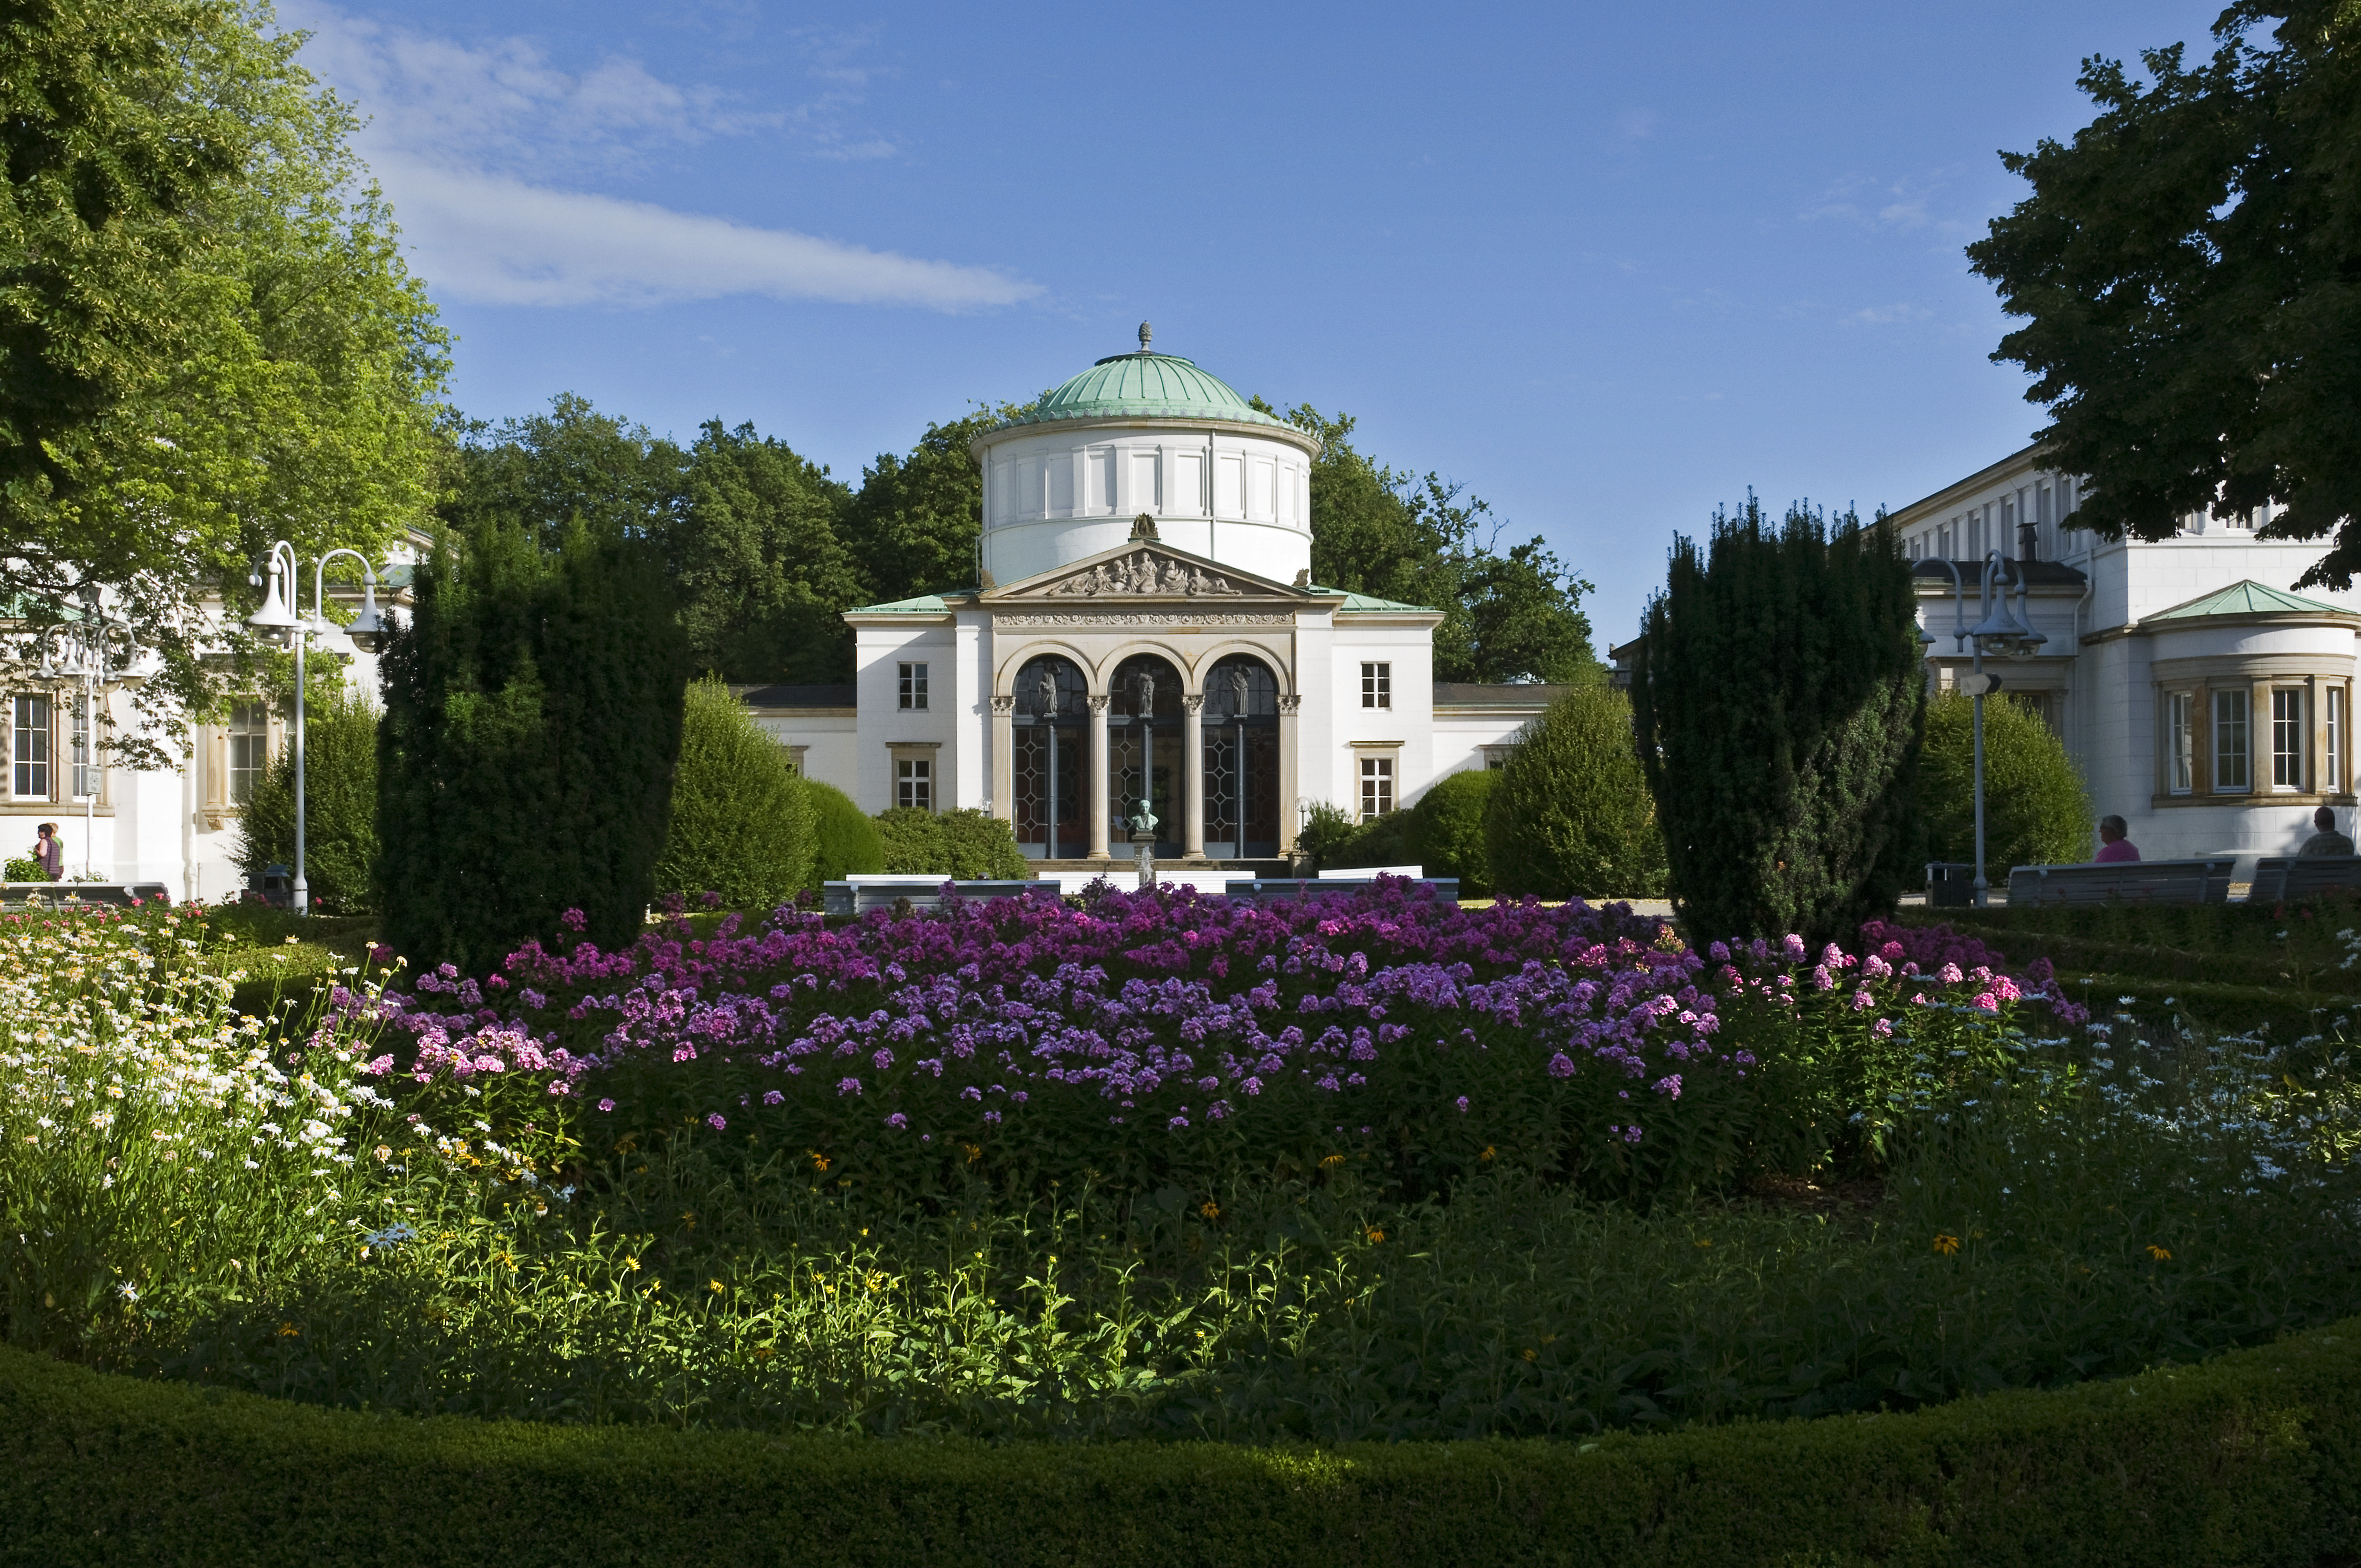 Staatsbad Bad Oeynhausen